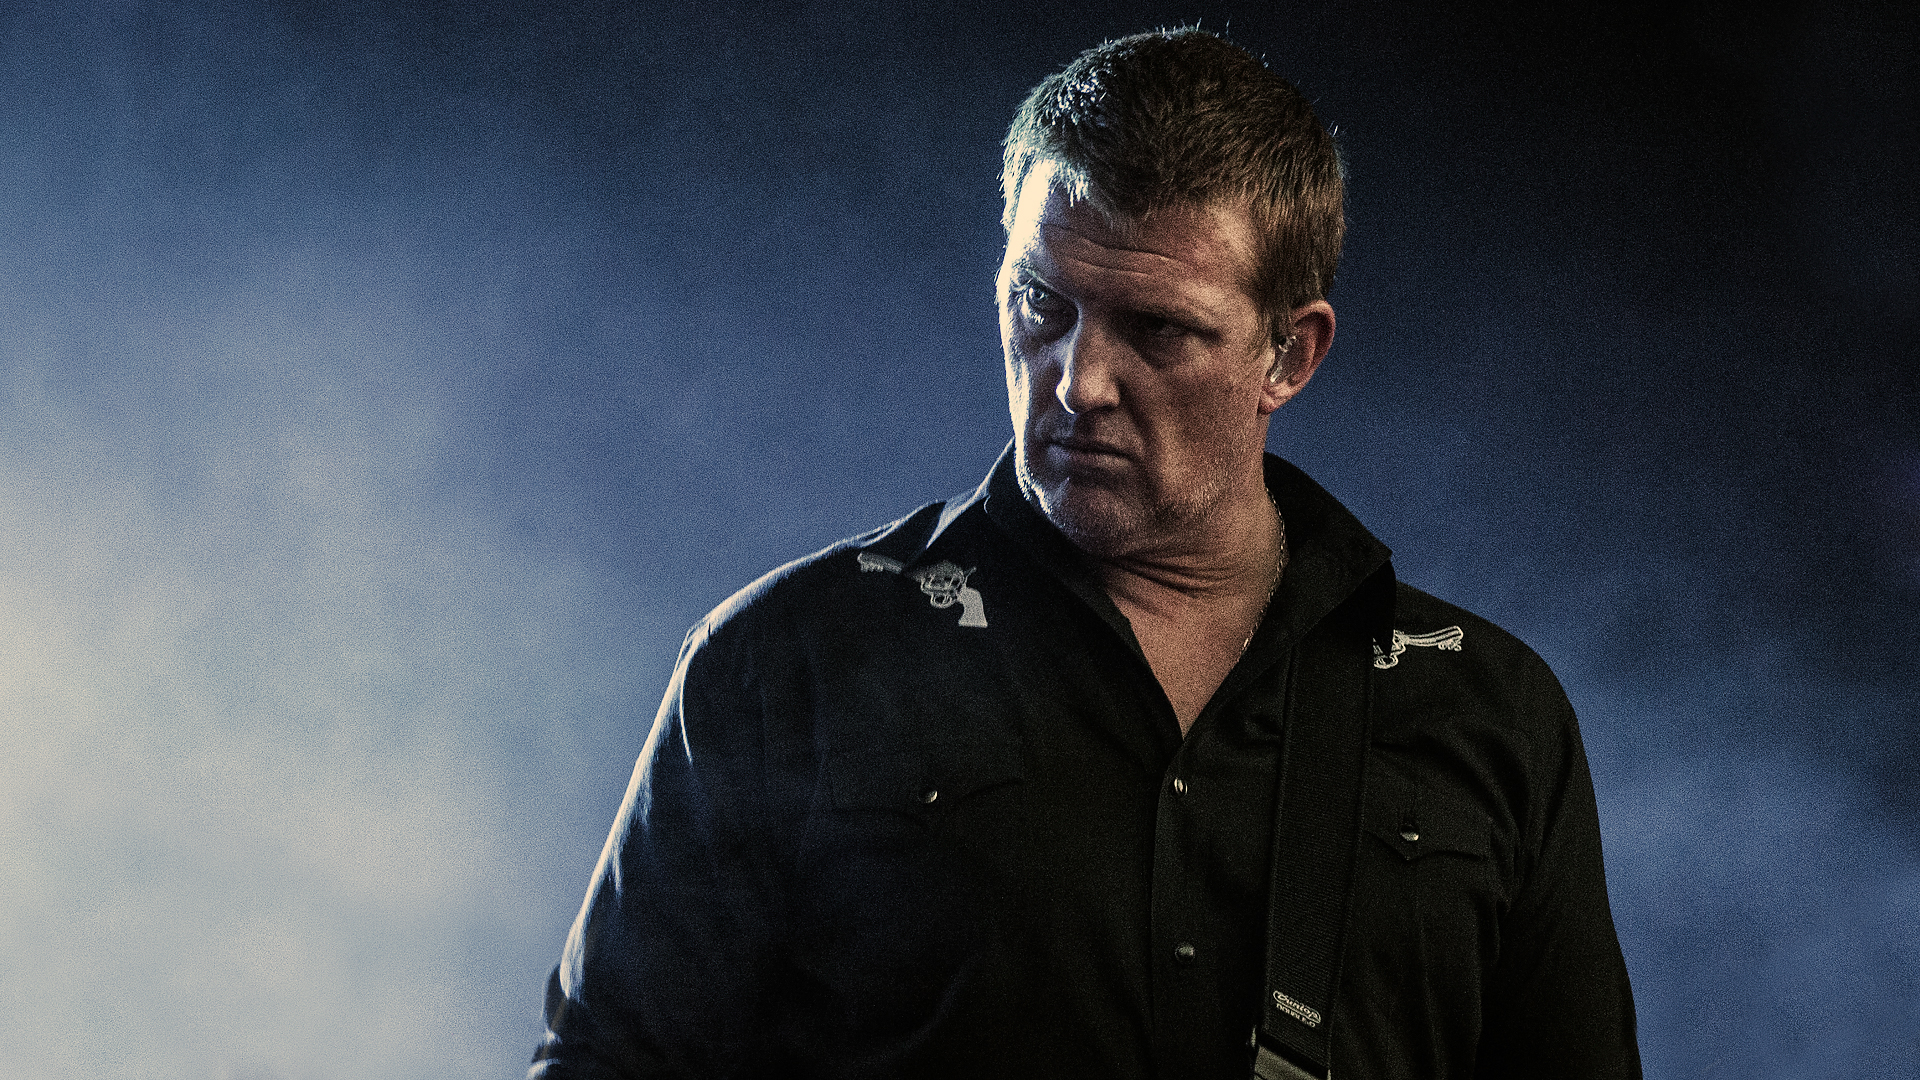 Josh Homme // Queens Of The Stone Age